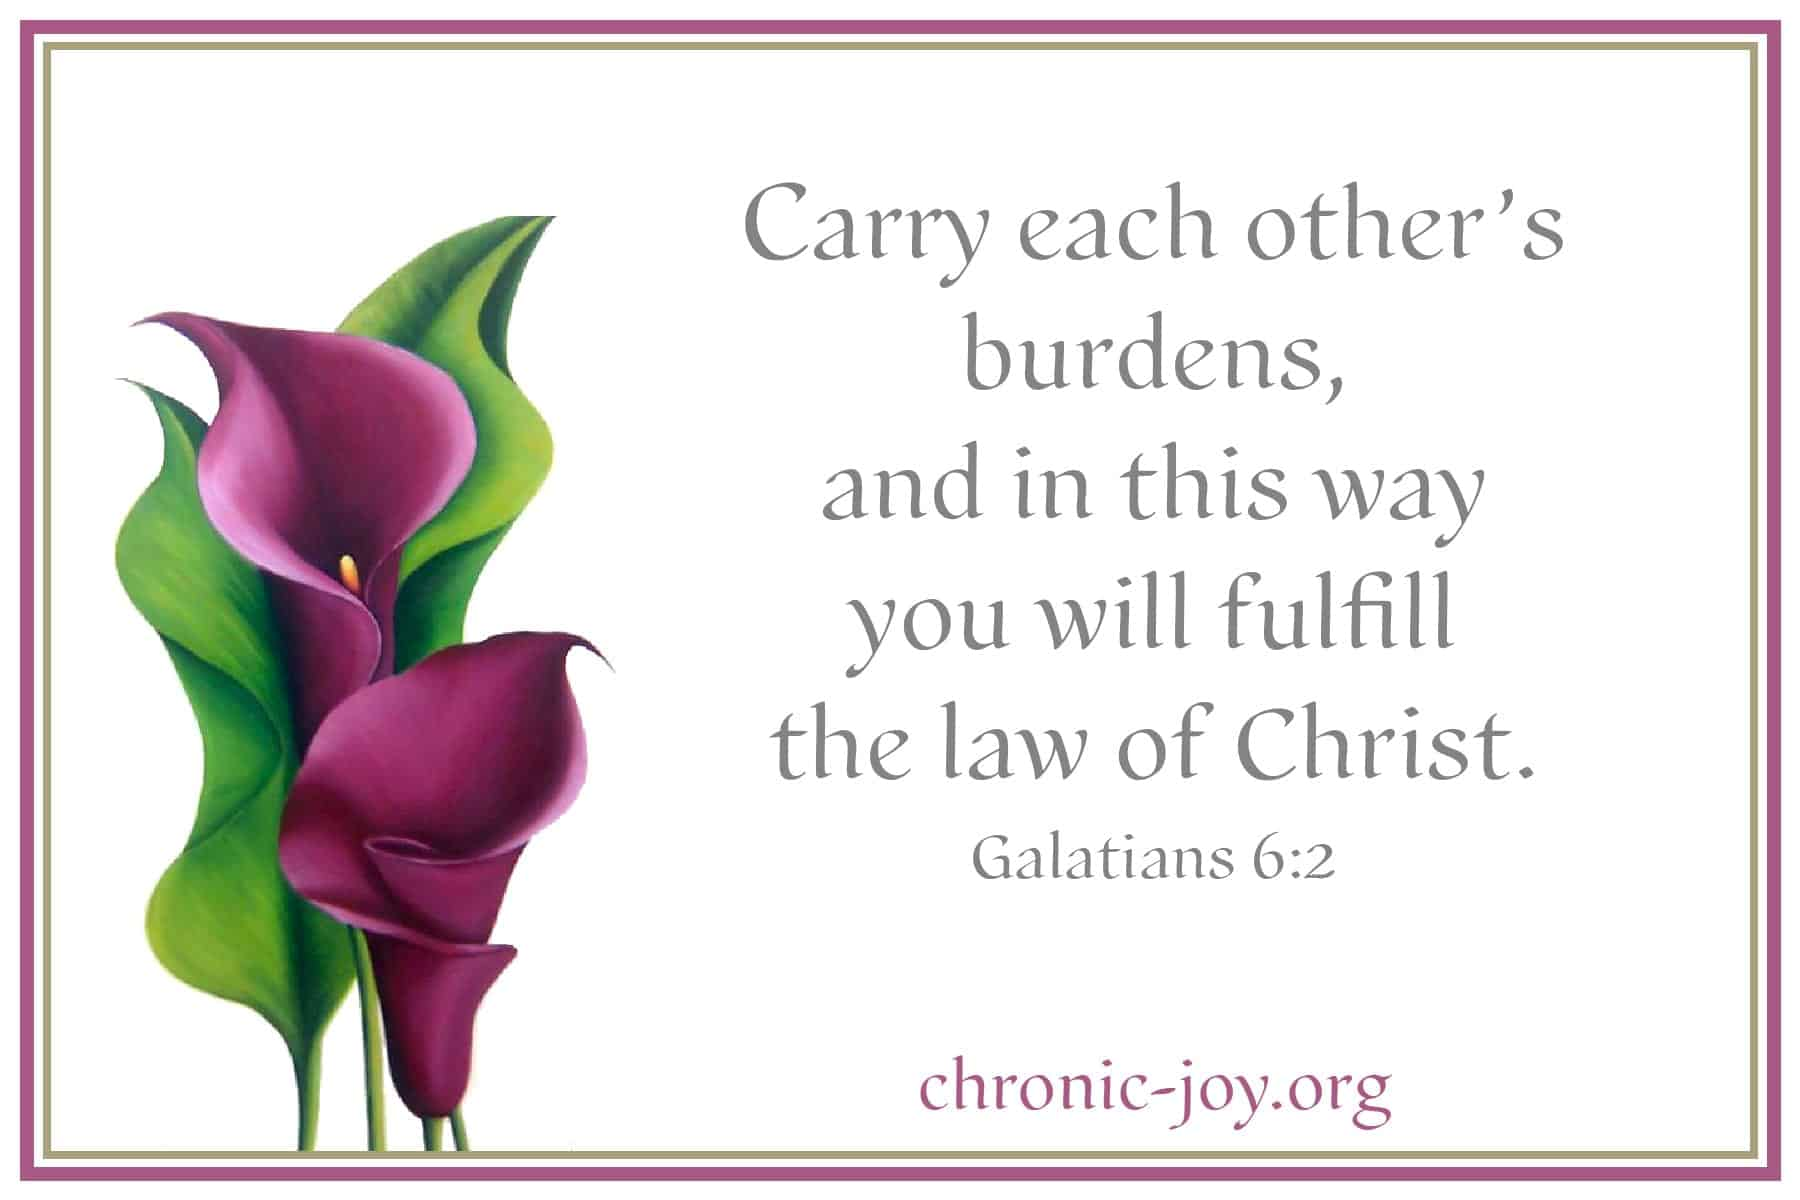 Carry each other's burdens - Galatians 6:2